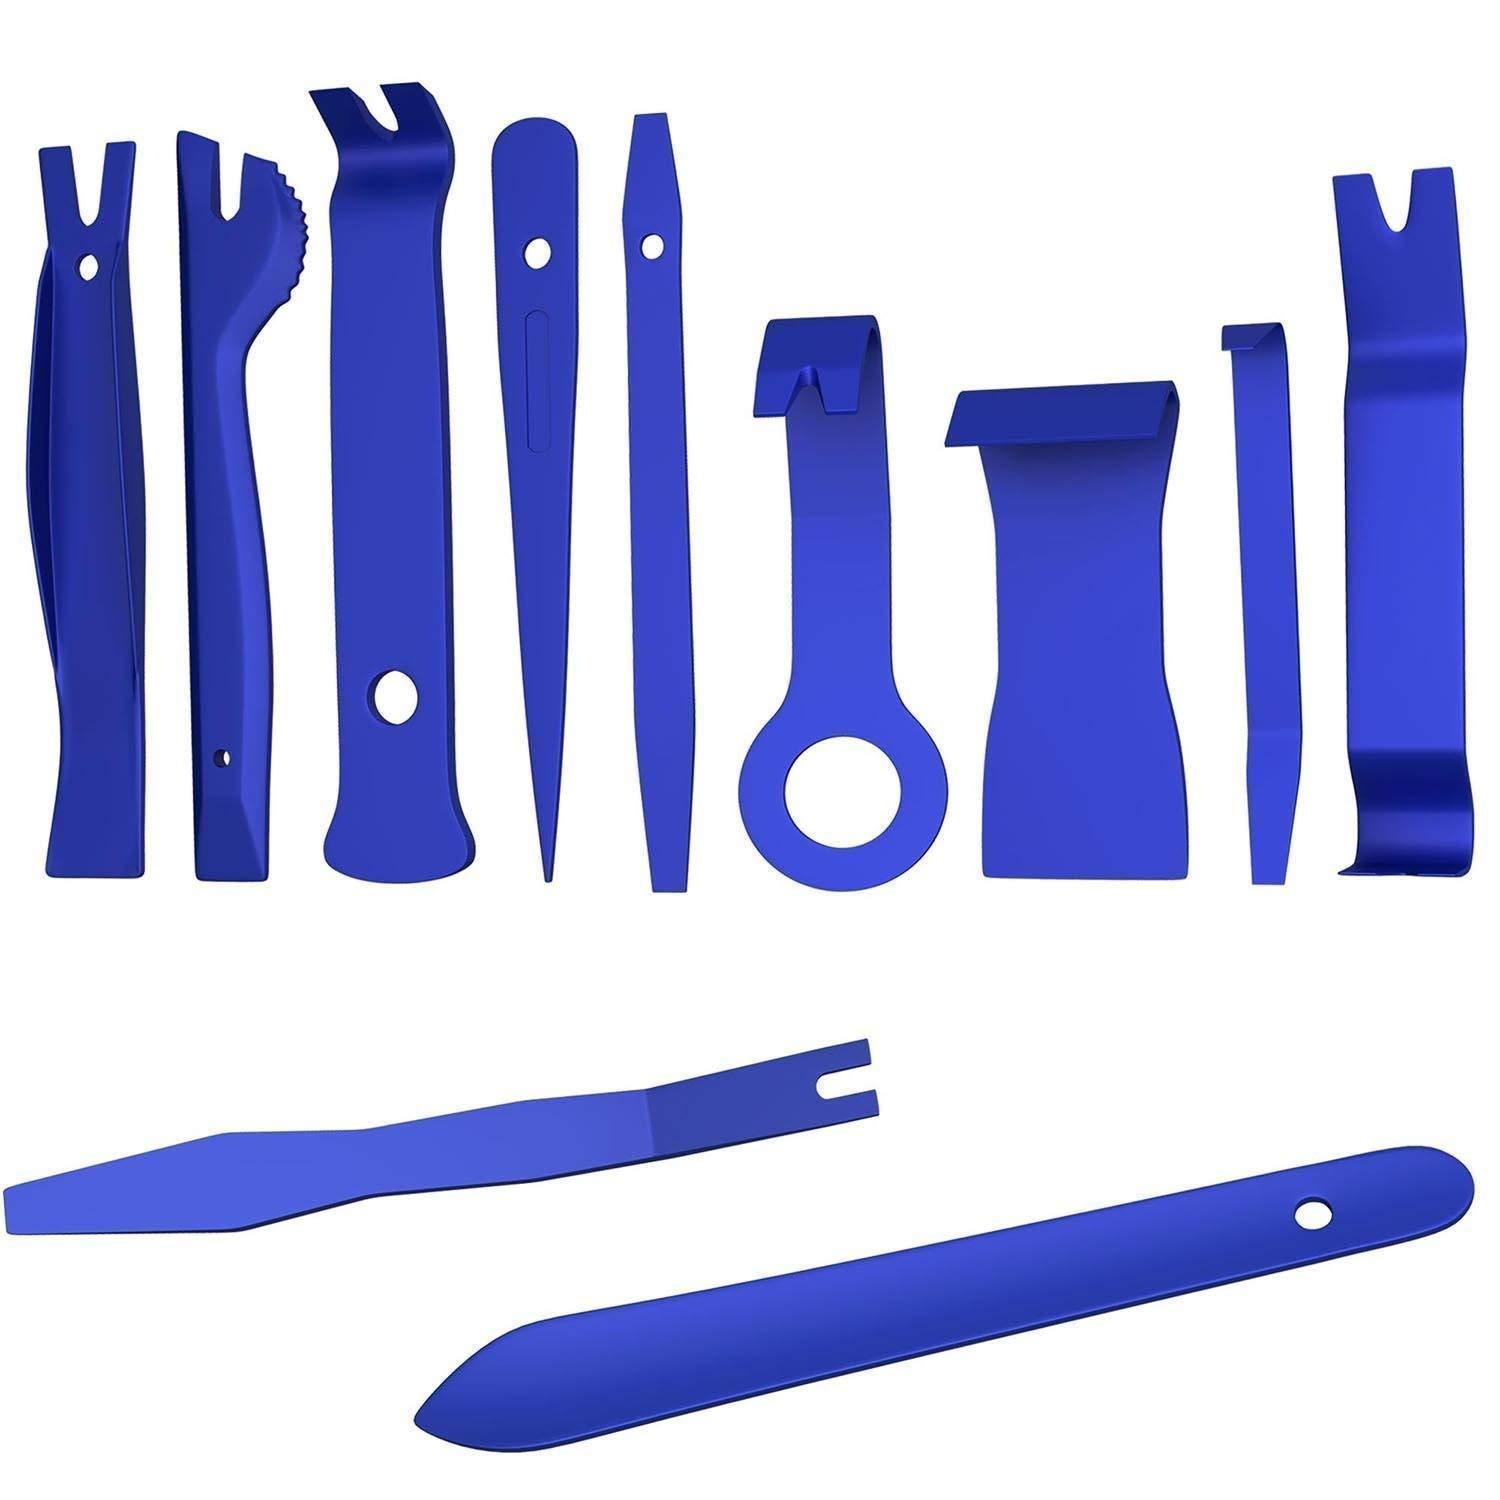 REMOVAL INSTALL TOOL SET(12 pcs)